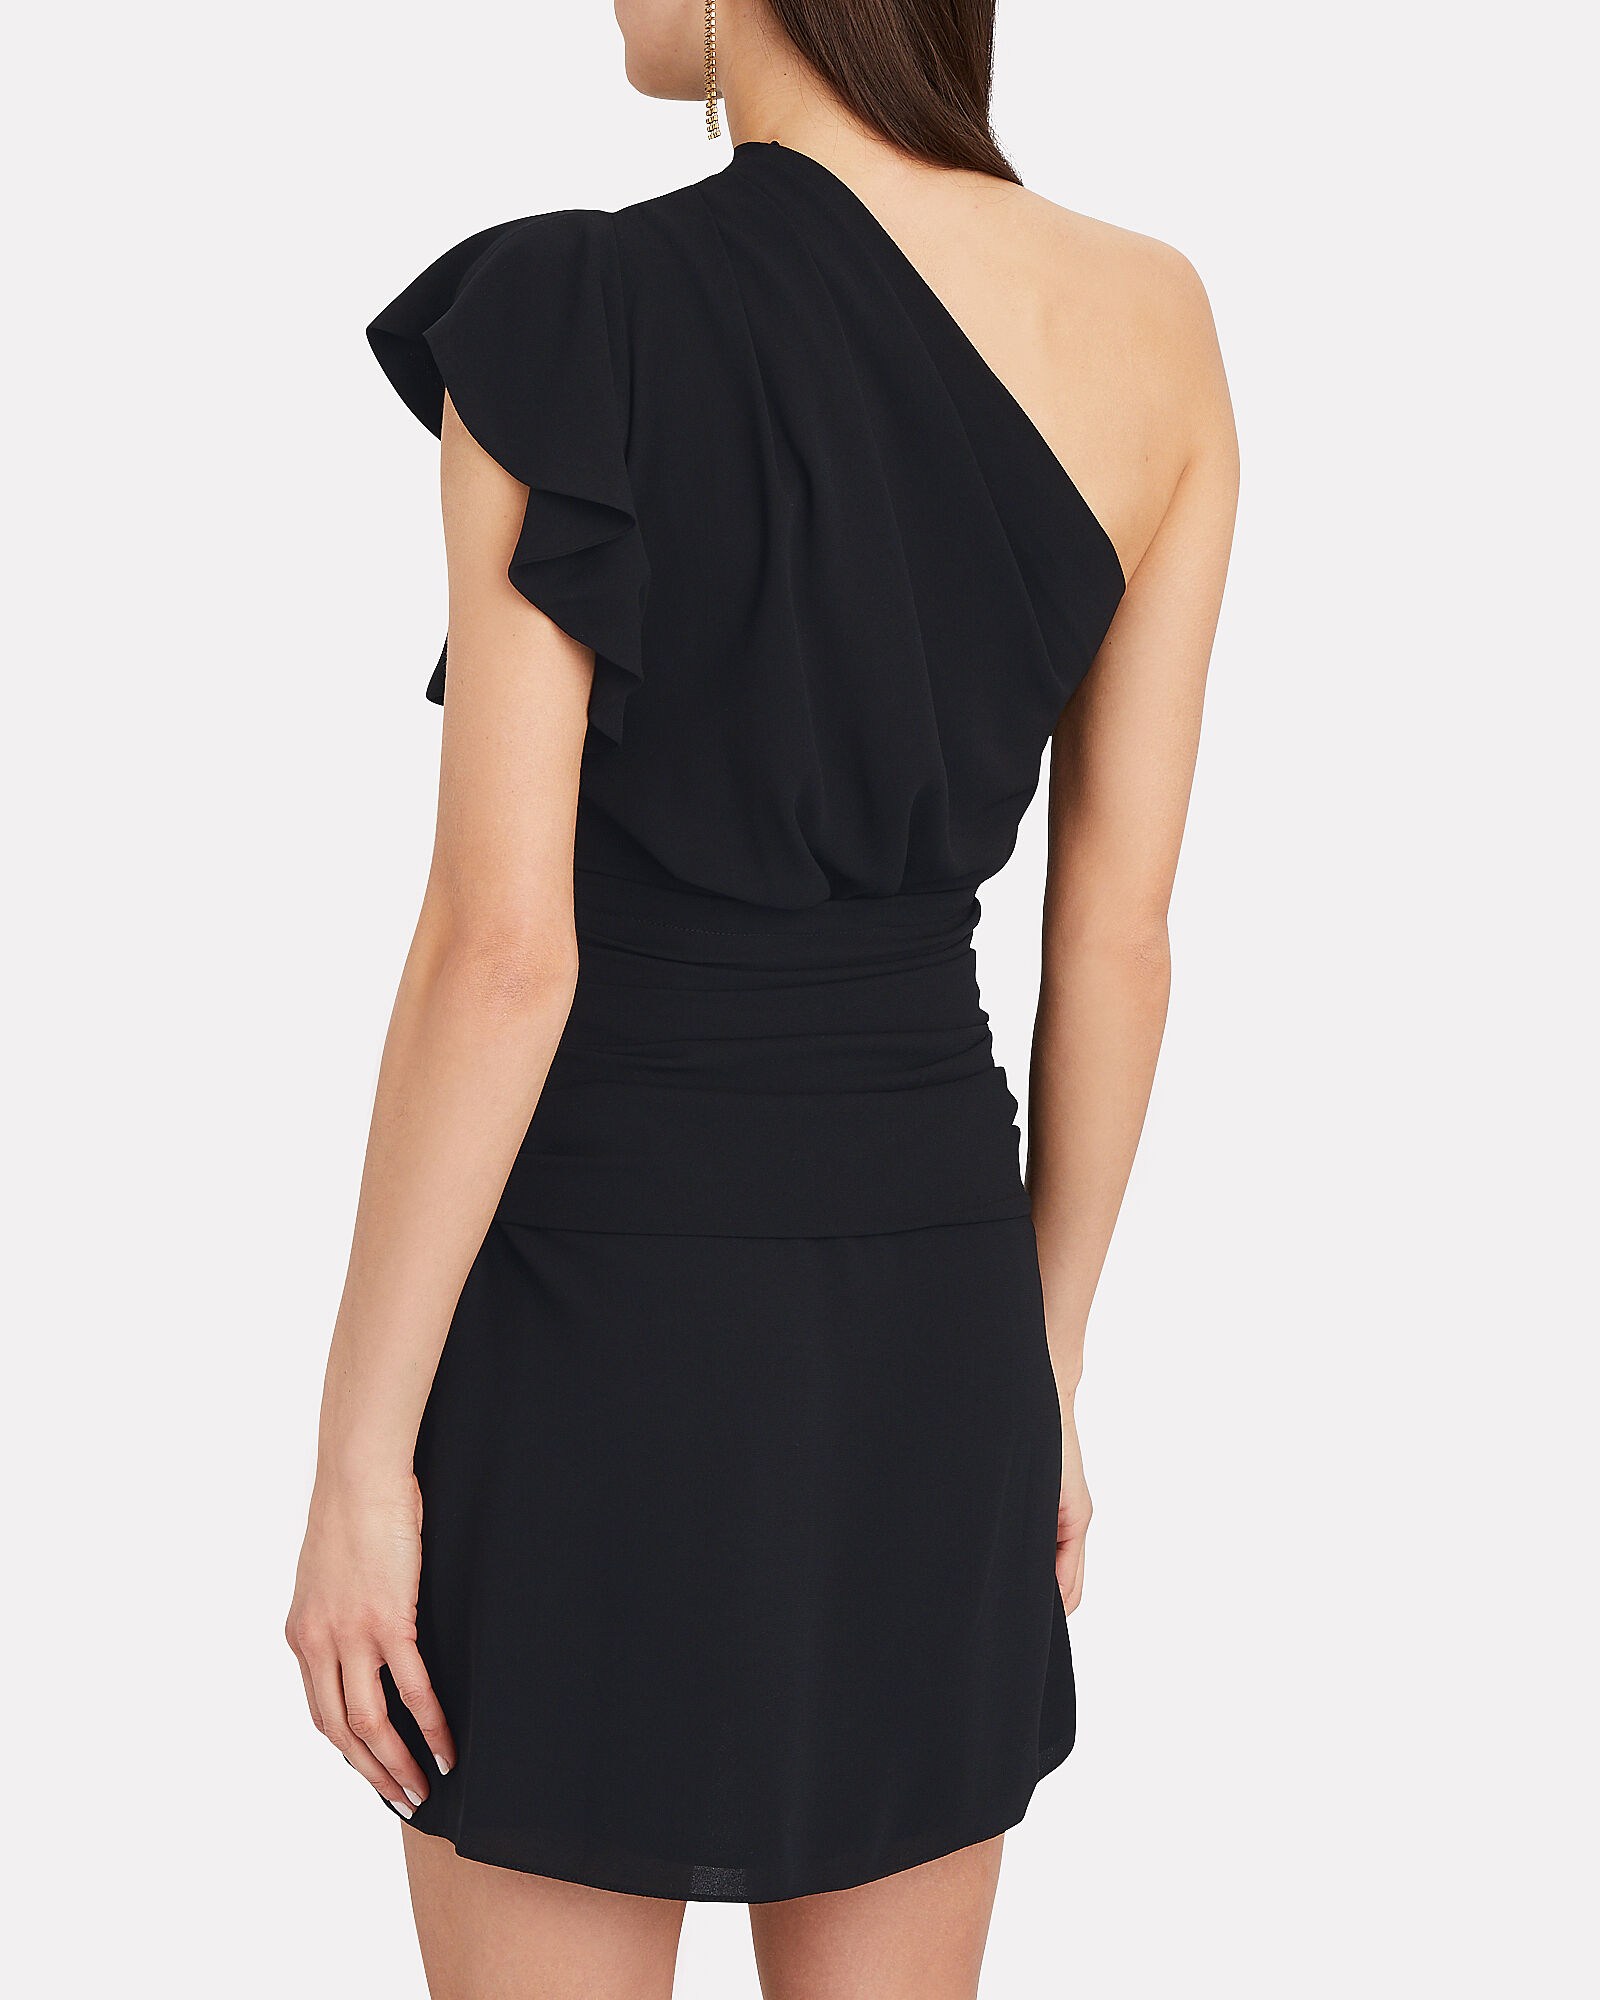 Bonzac Draped One-Shoulder Dress, BLACK, hi-res